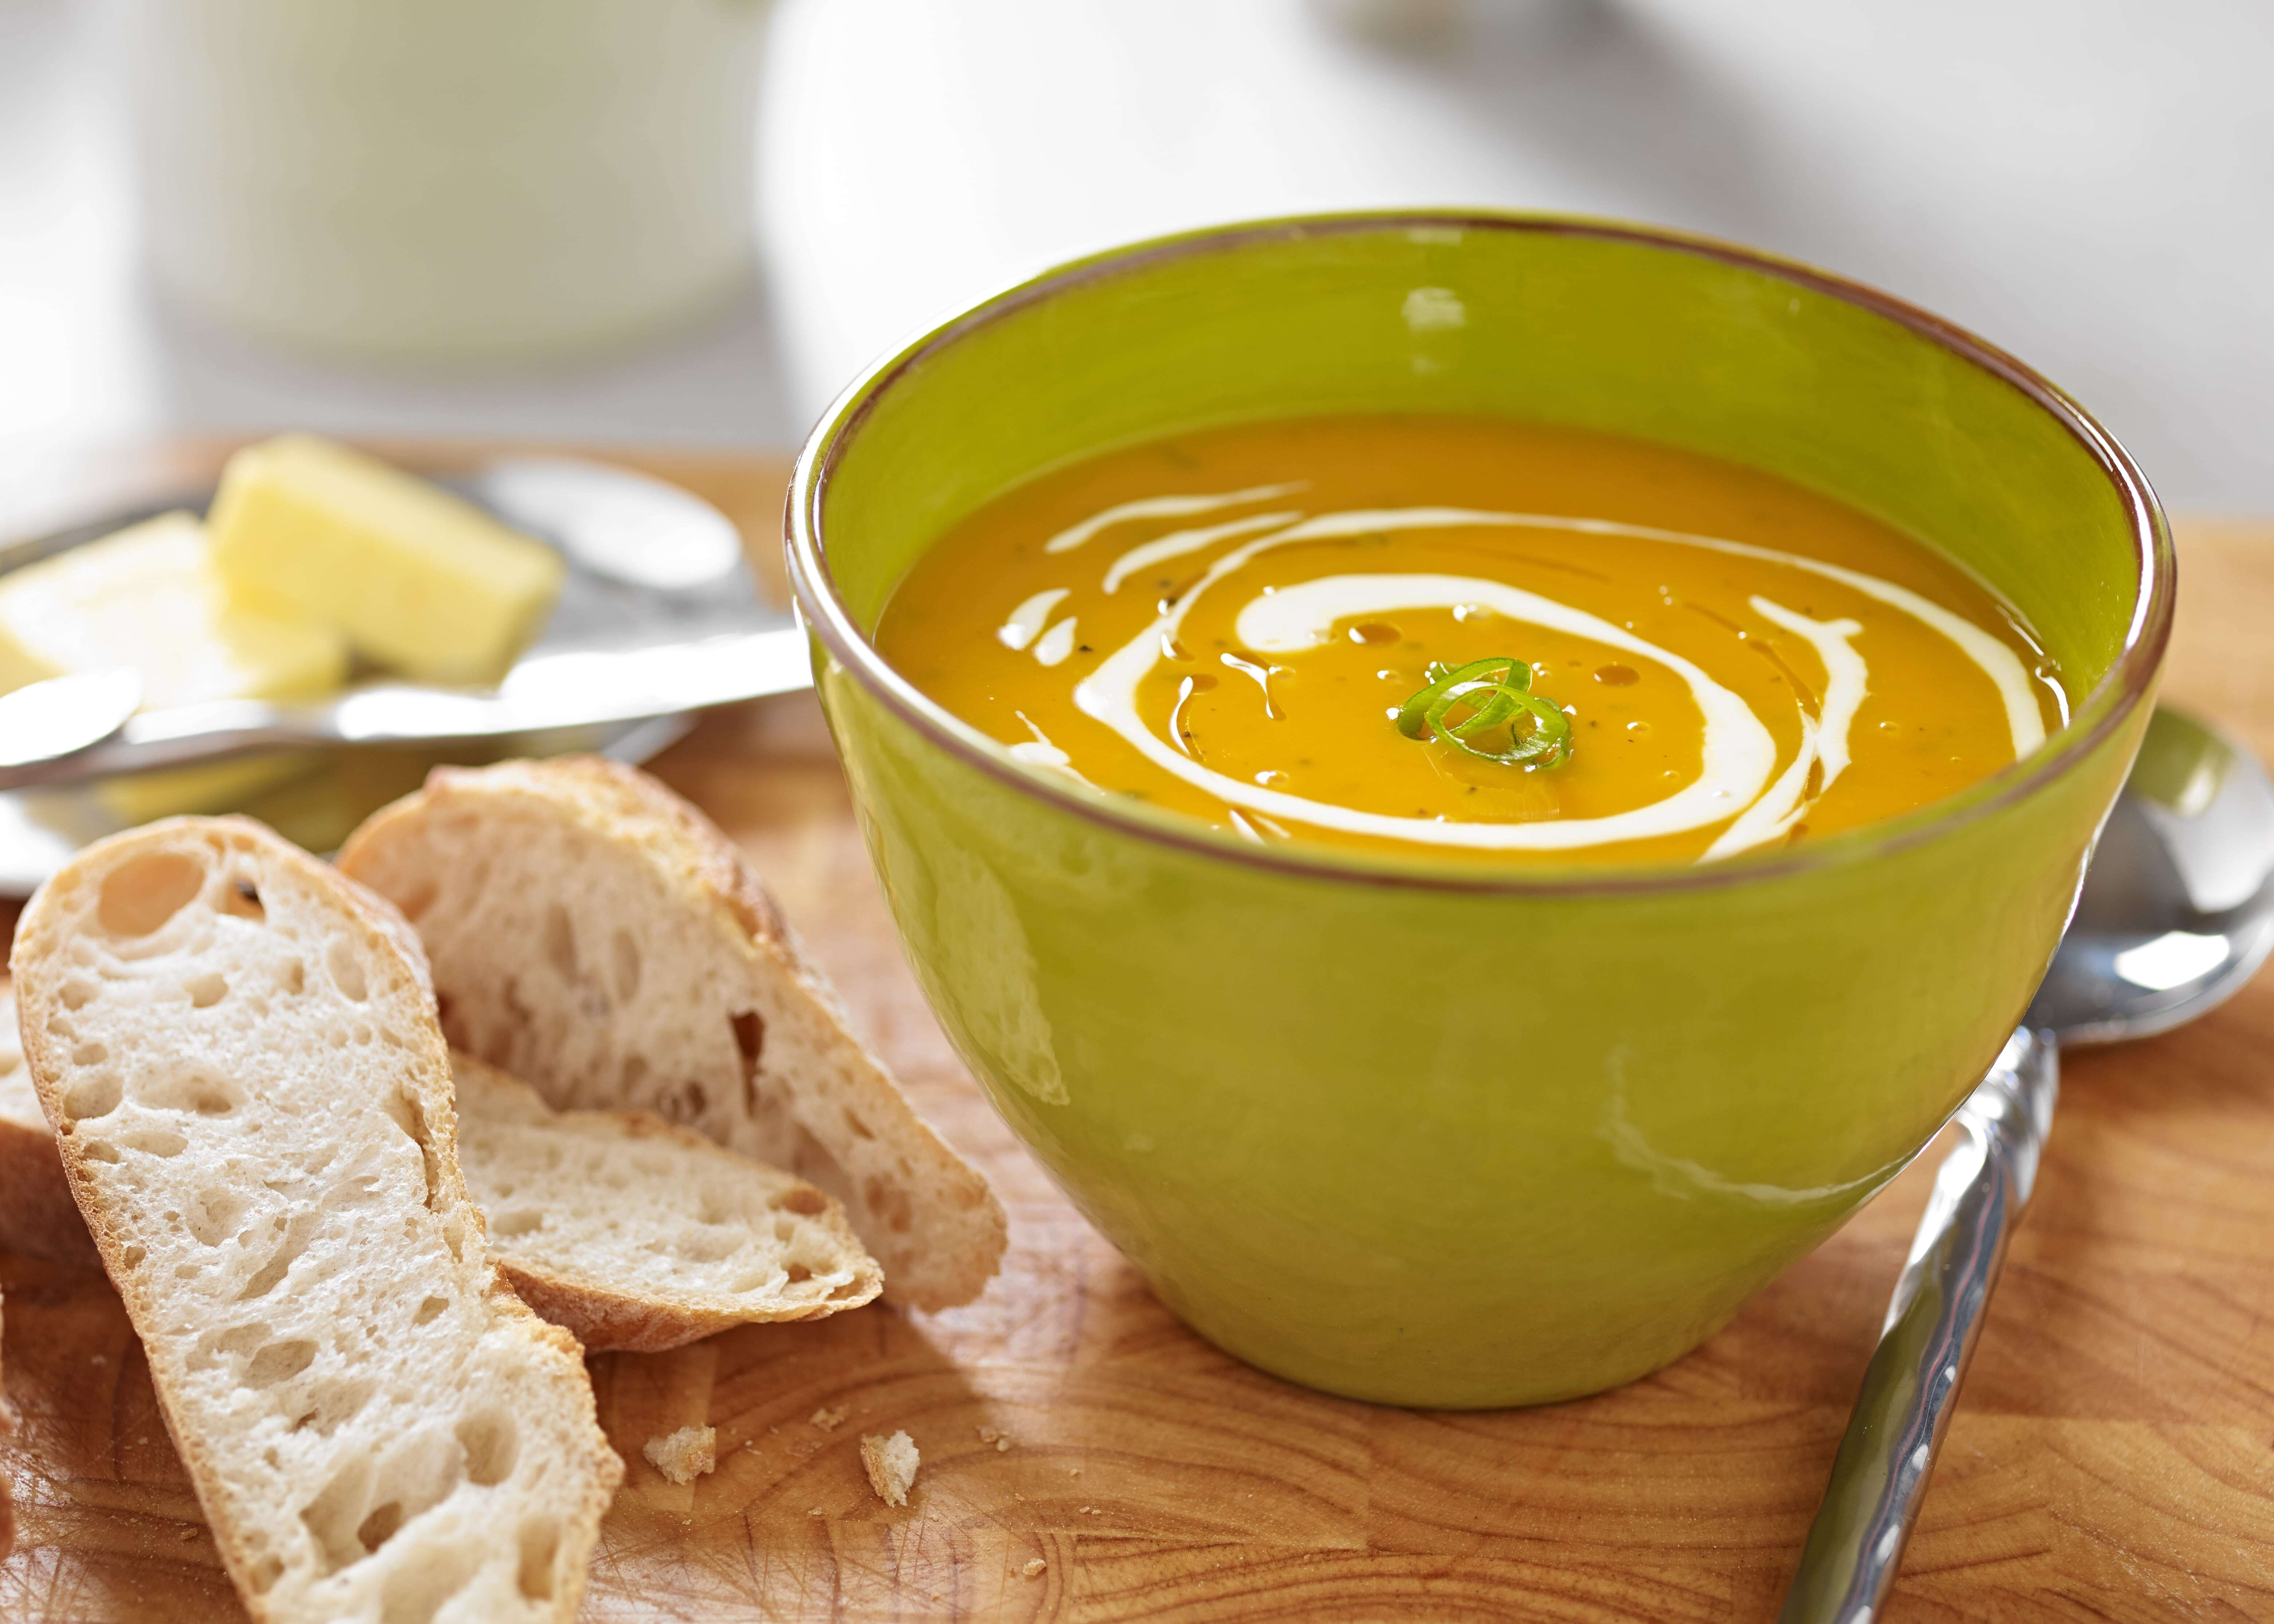 Roast Butternut Squash, Sage and Goat's Cheese Soup